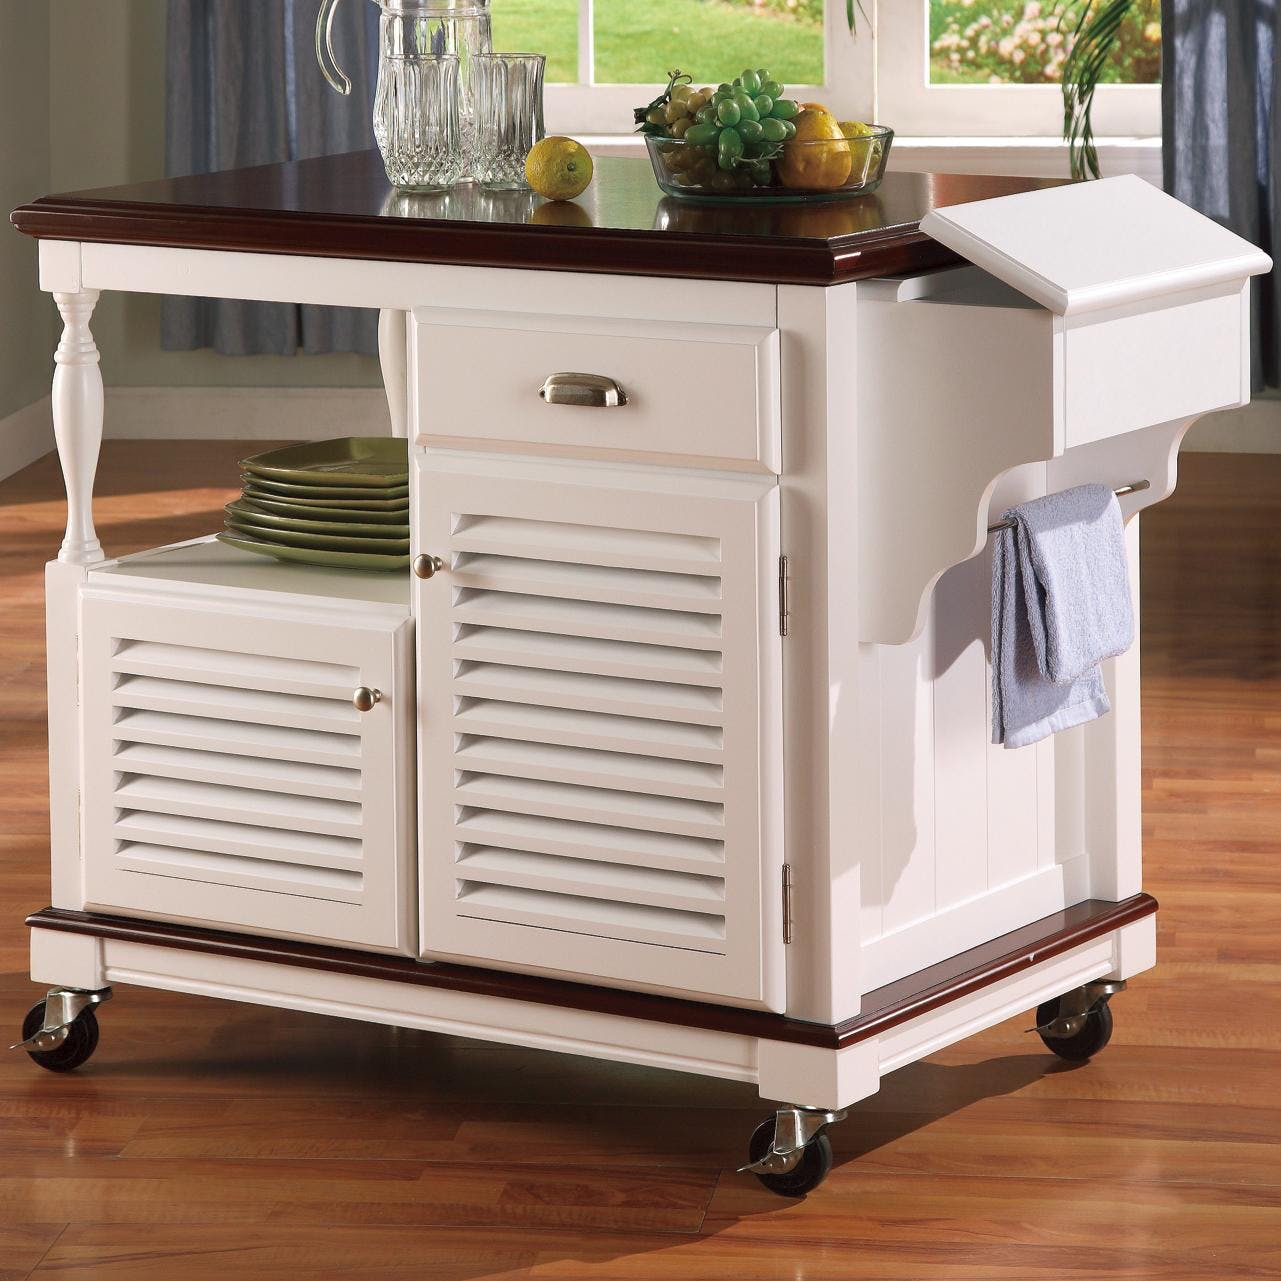 Coaster Kitchen Cart 910013 - Gallery Furniture - Medford, NY